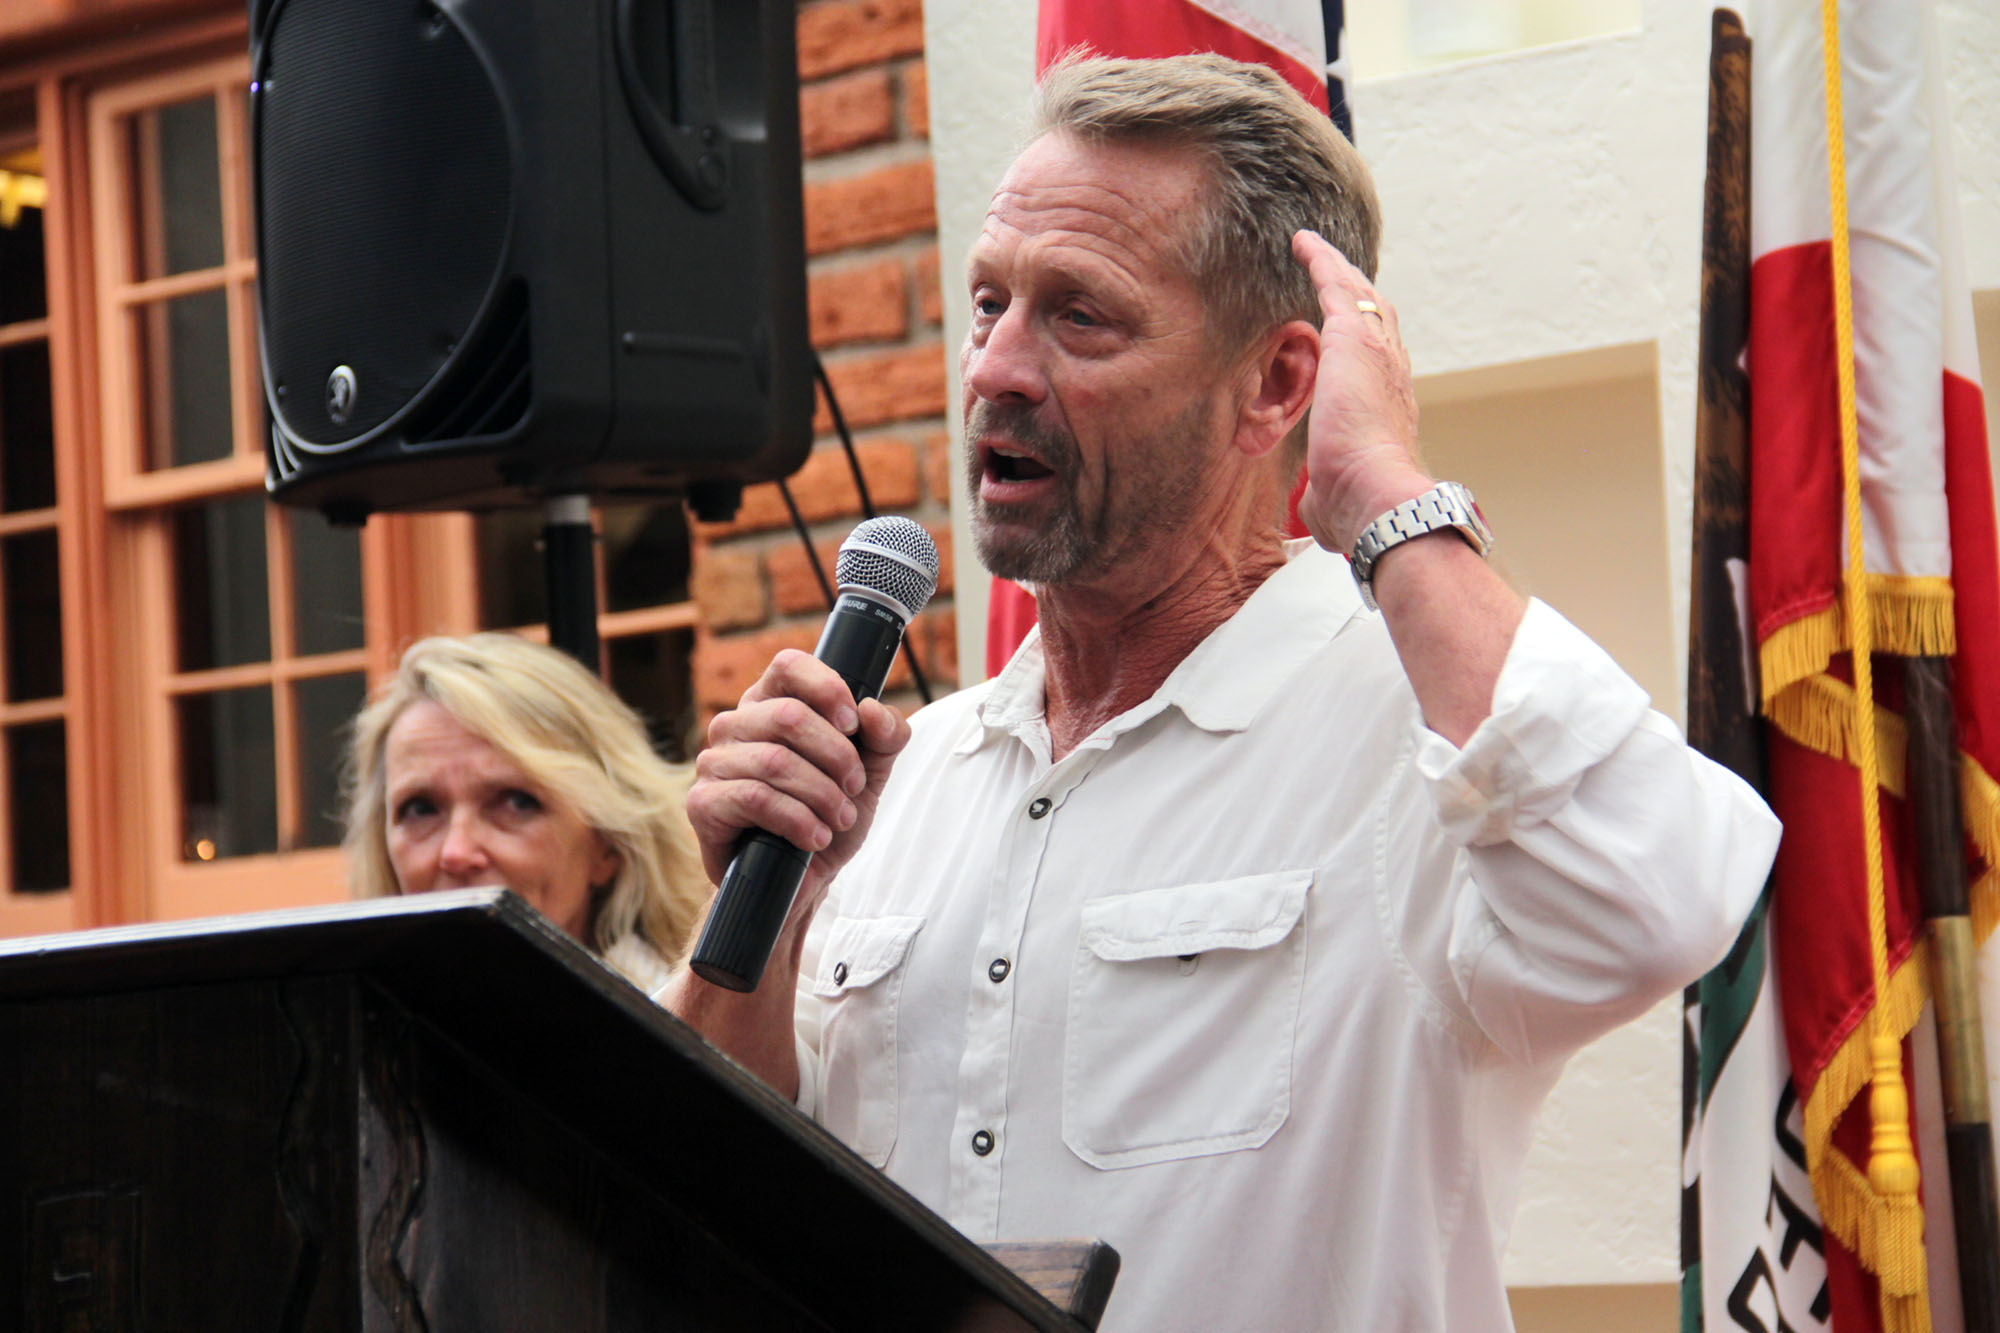 With his wife and business partner, Diana Schmitt, to his side, Scott Schmitt gives an emotional speech thanking the community after the couple received the San Juan Capistrano Chamber of Commerce's Man and Woman of the Year Award on Thursday, July 11. Photo Shawn Raymundo